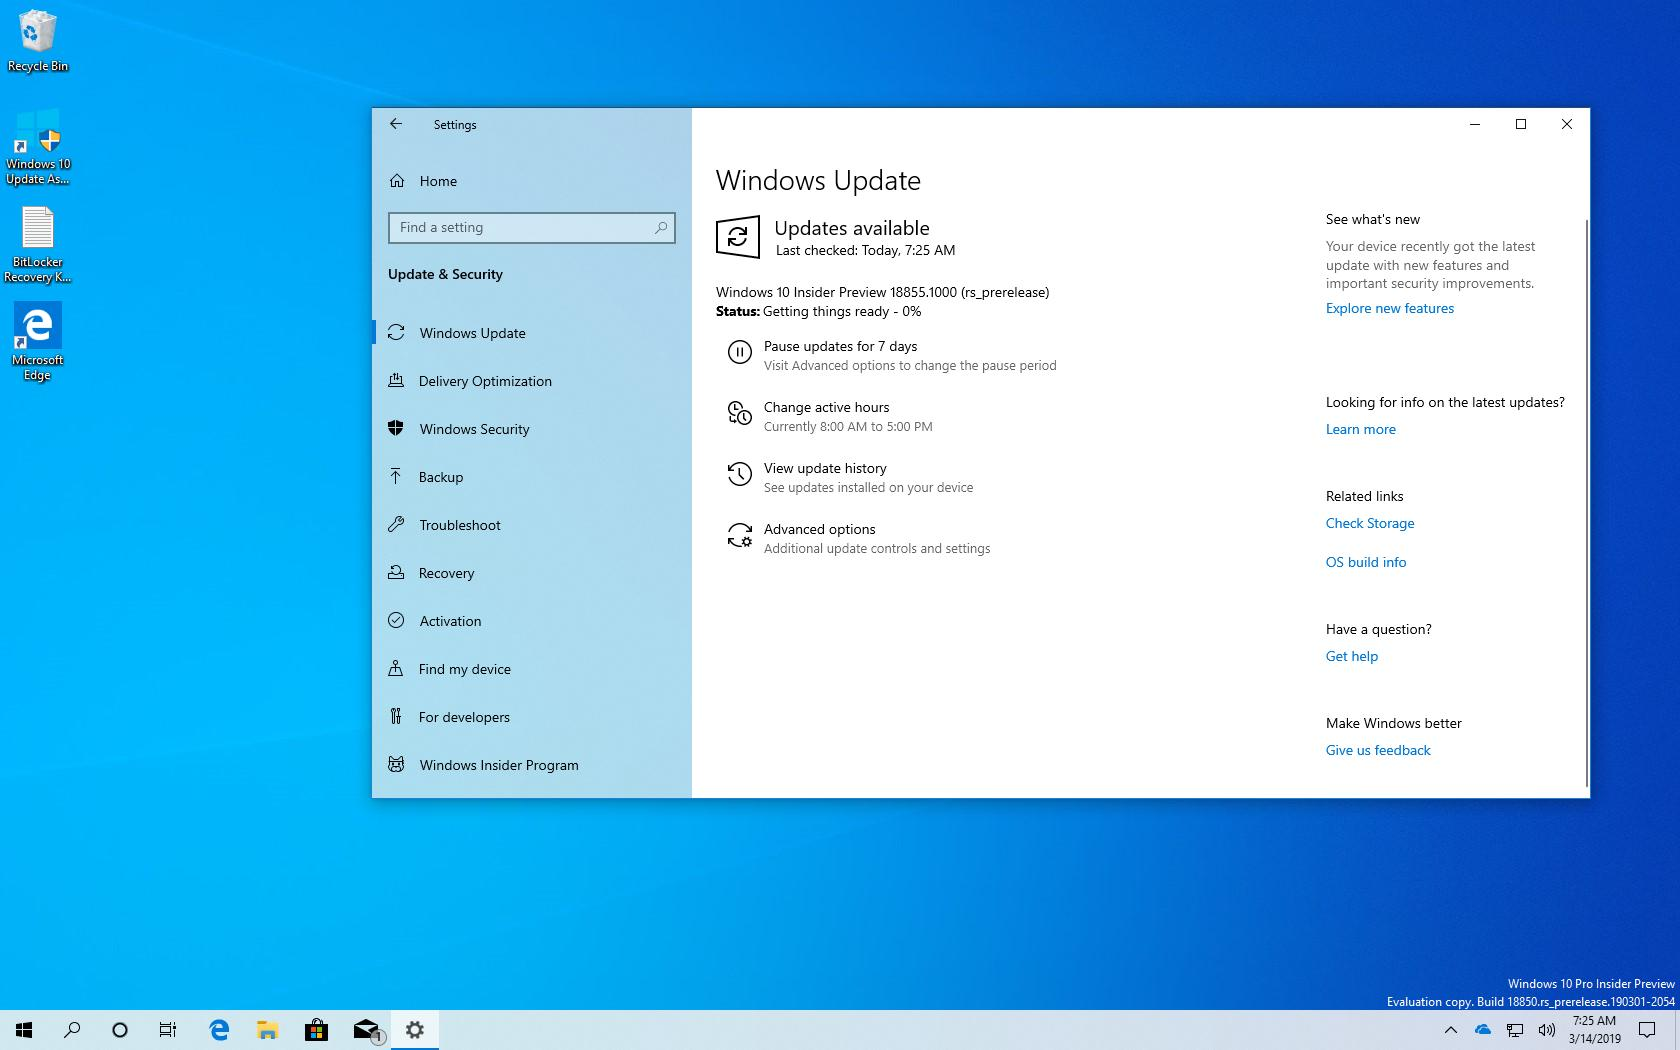 Microsoft Releases Windows 10 20h1 Preview Build 18855